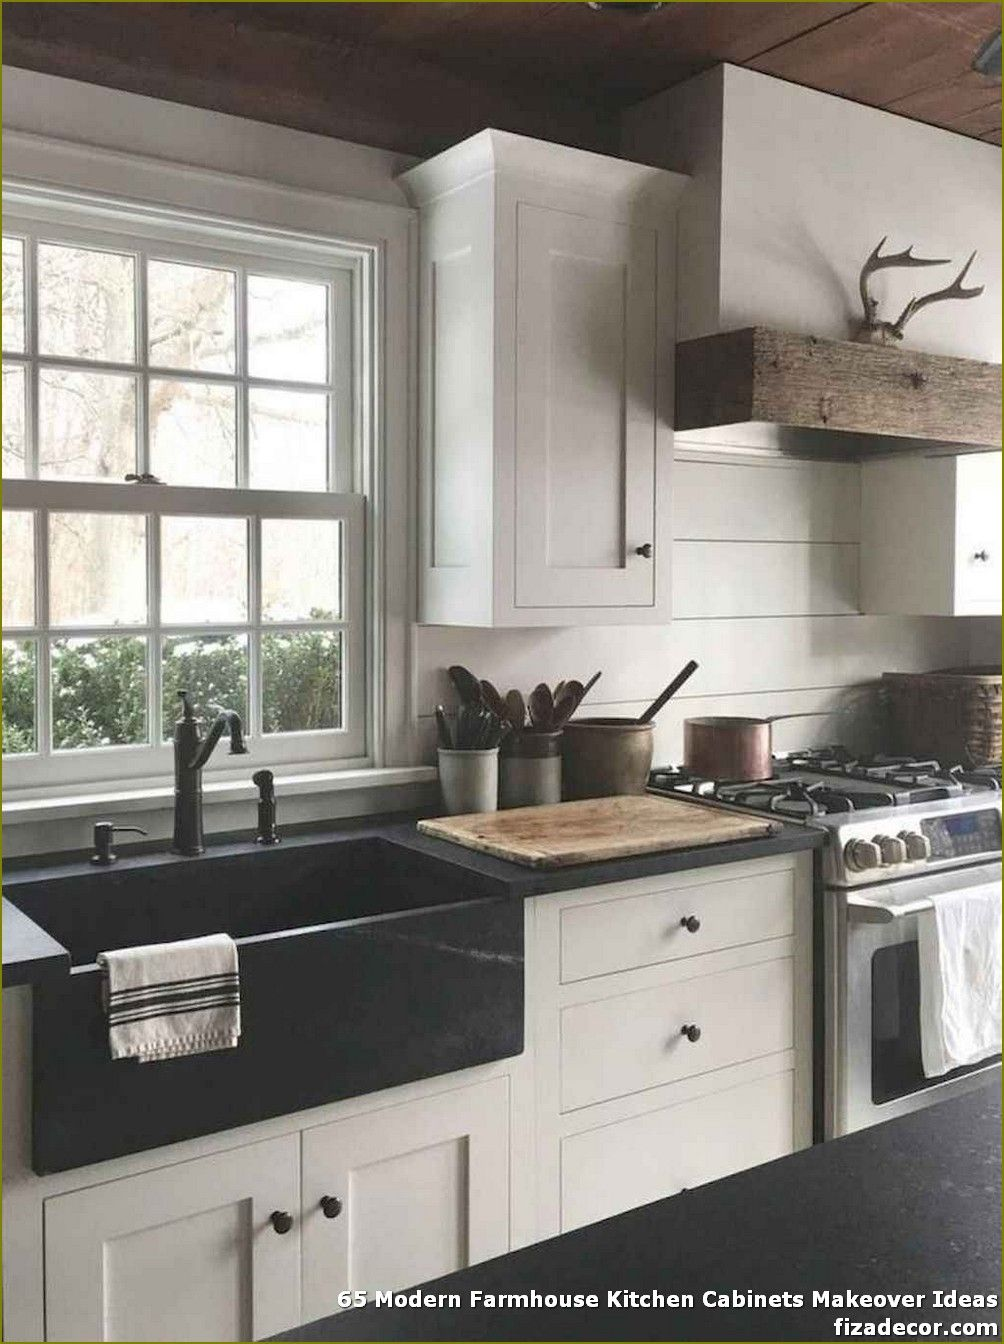 ✓ 65 Modern Farmhouse Kitchen Cabinets Makeover Ideas - Page 11 of 65 - Best Home Decor